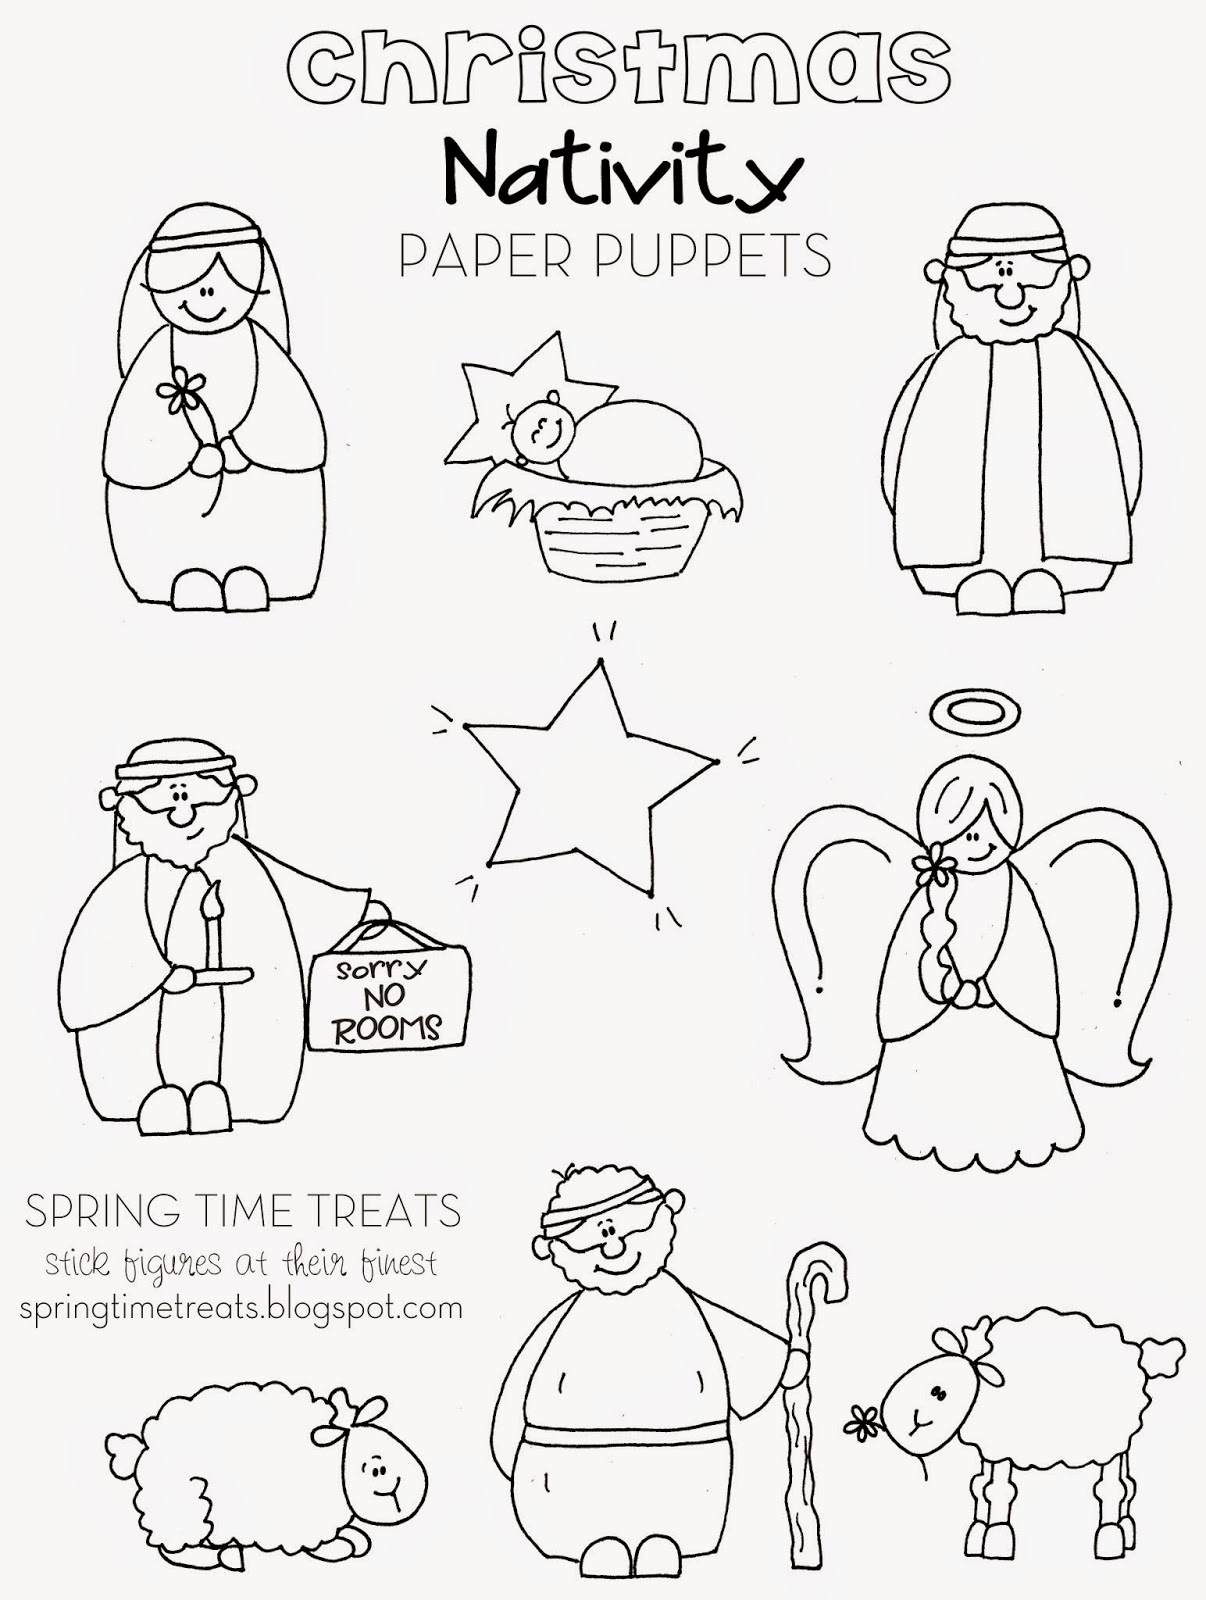 Spring Time Treats: Nativity paper puppets - FREE printables